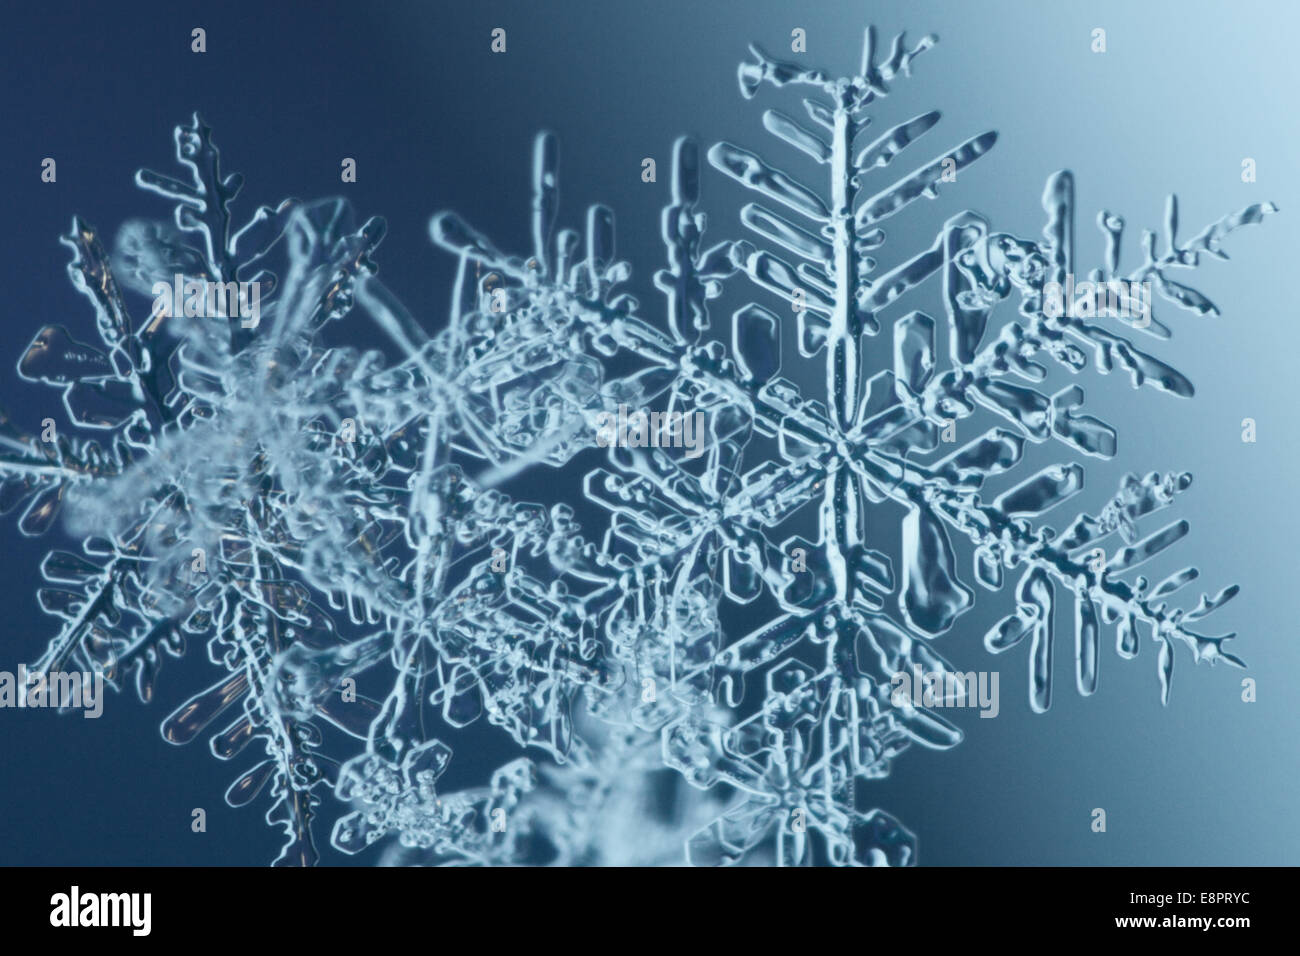 extreme close up of snowflakes stock photo royalty free image